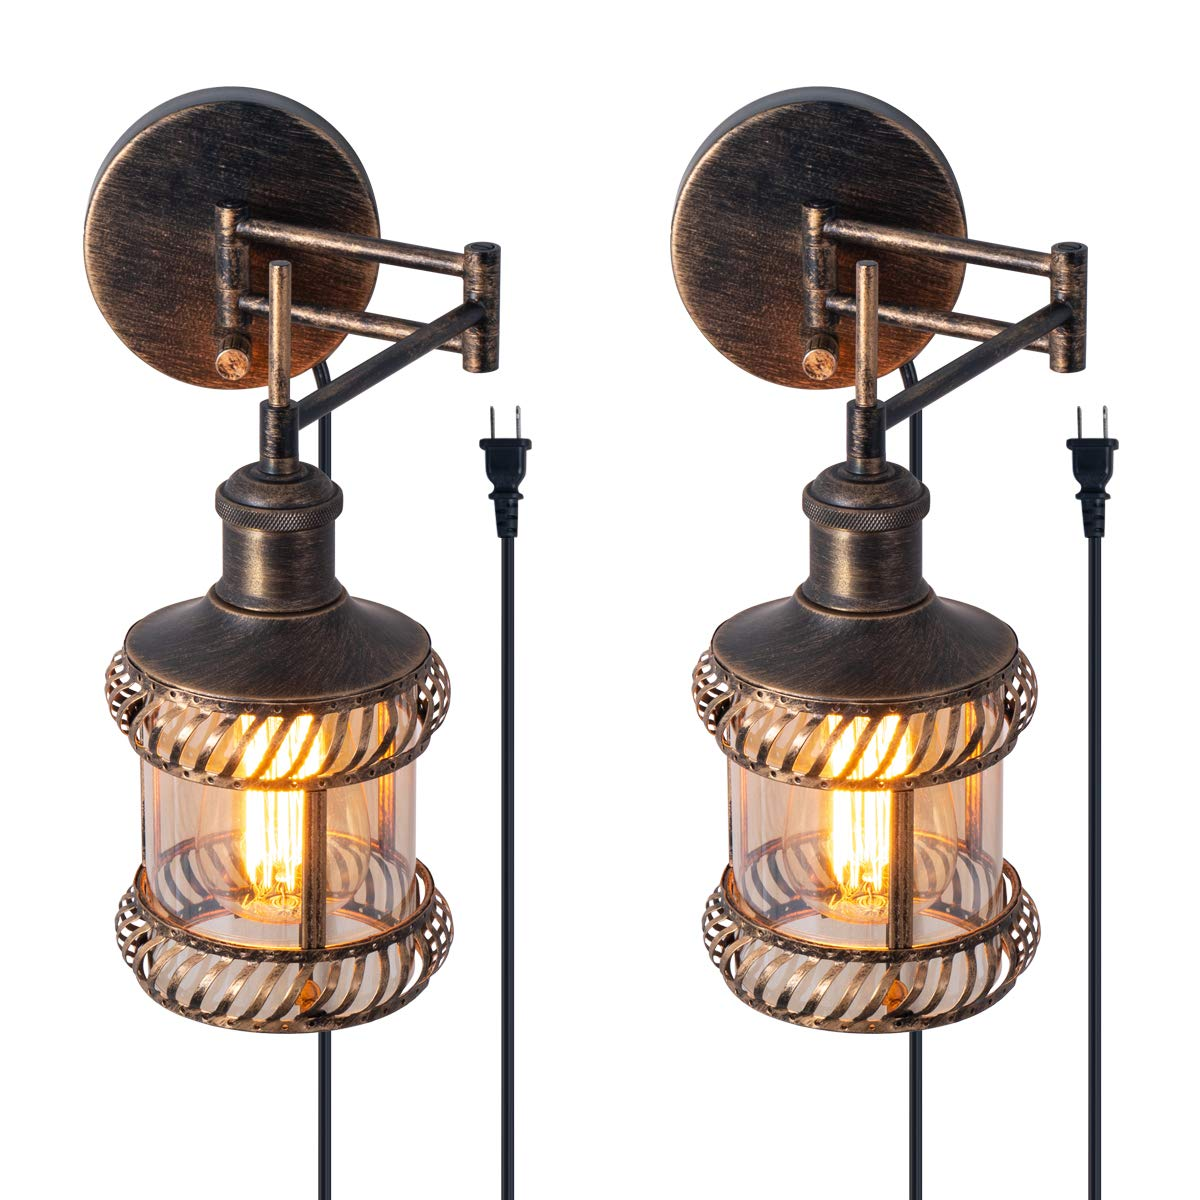 Swing Arm Wall Lamp, 2-in-1 360 Angle Adjustable Industrial Rustic Wall Sconces with Plug in Hardwired ON/Off Switch Glass Shade Retro Iron Wall Light Fixtures for Bedside Bedroom Bathroom Living Room by YISURO